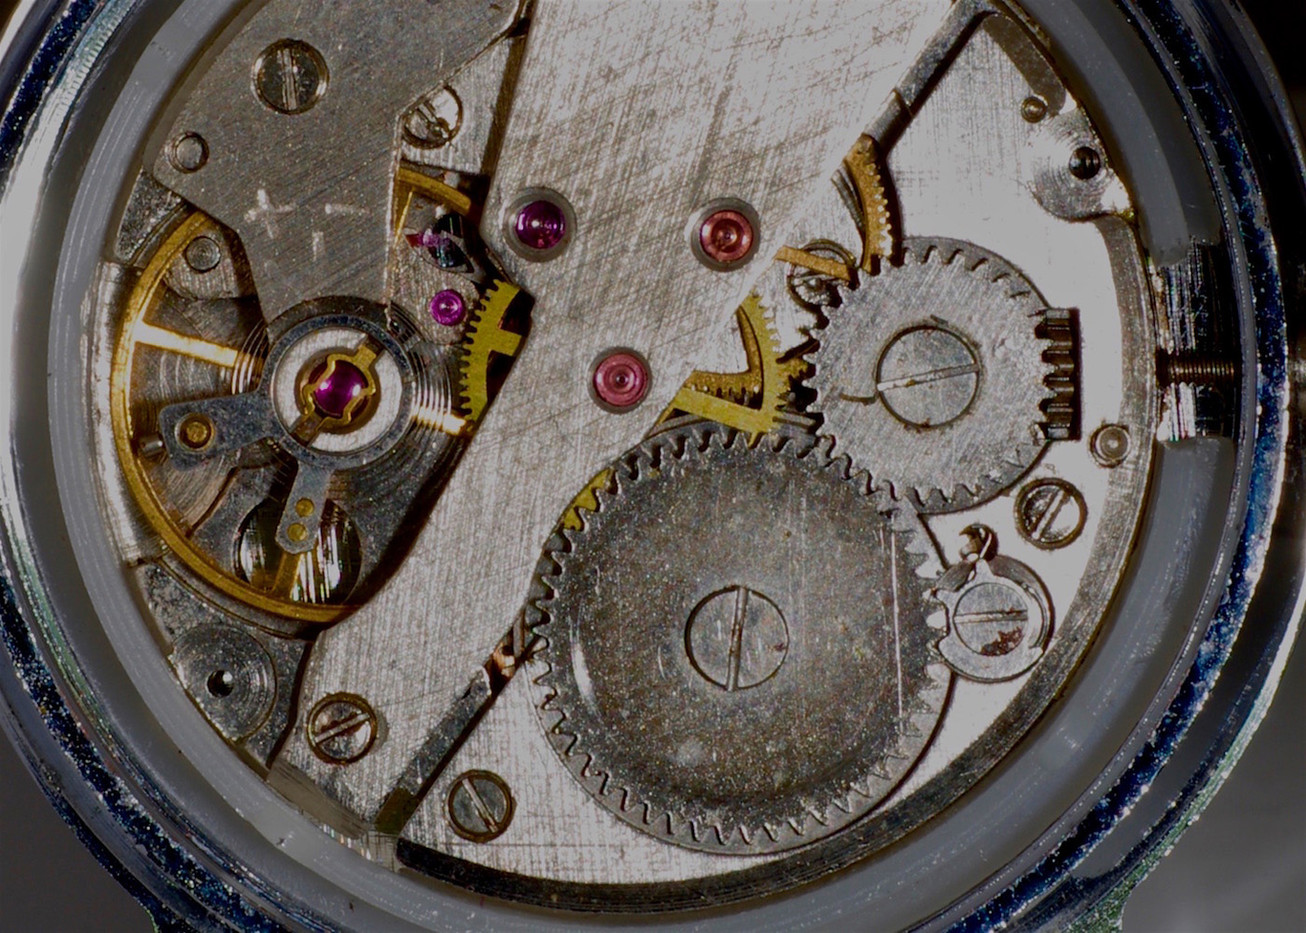 17 WRISTWATCH ESCAPEMENT by Ron Gaisford